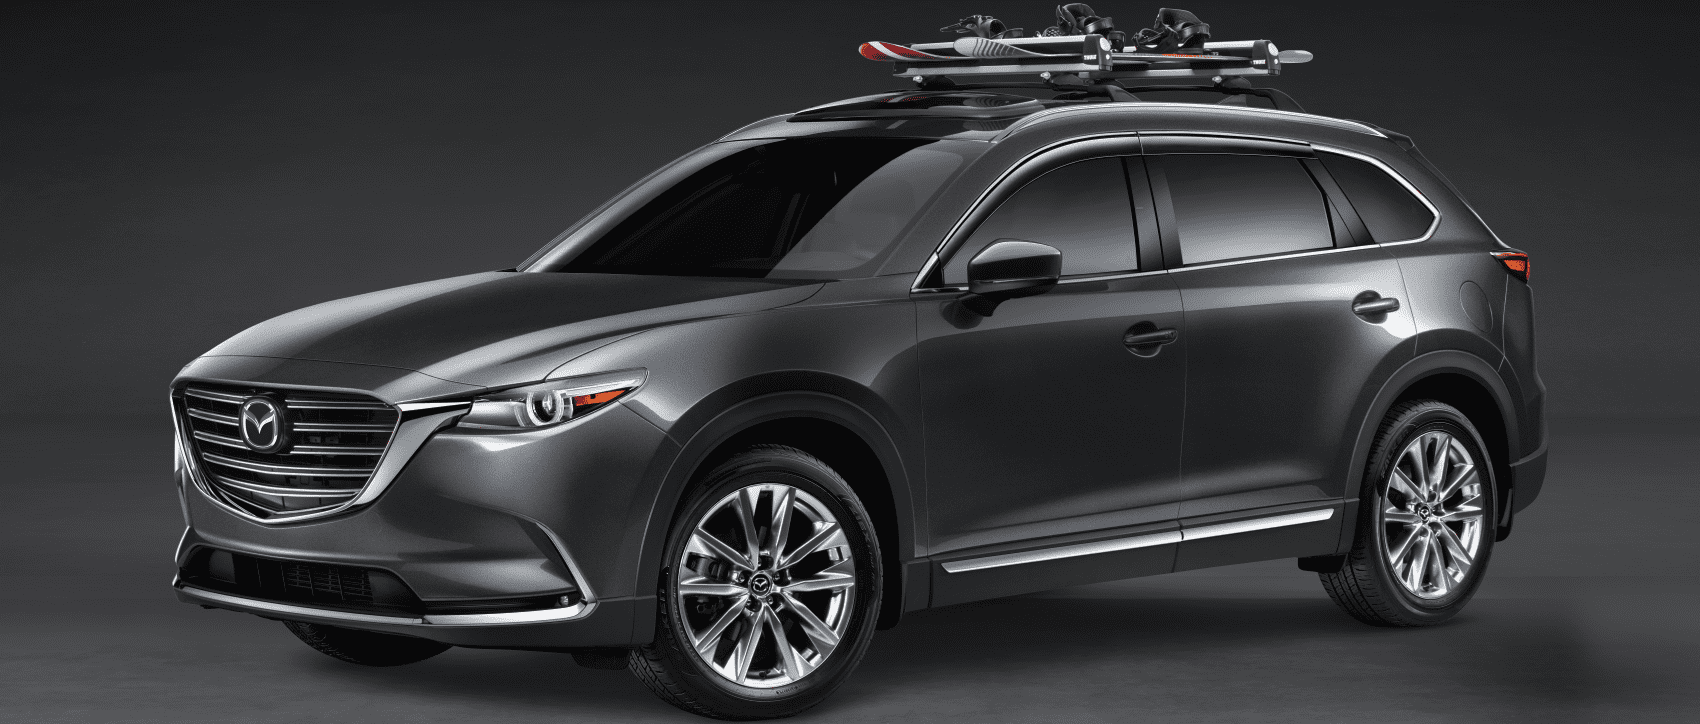 Test Drive The 2021 Mazda CX-9 Today!